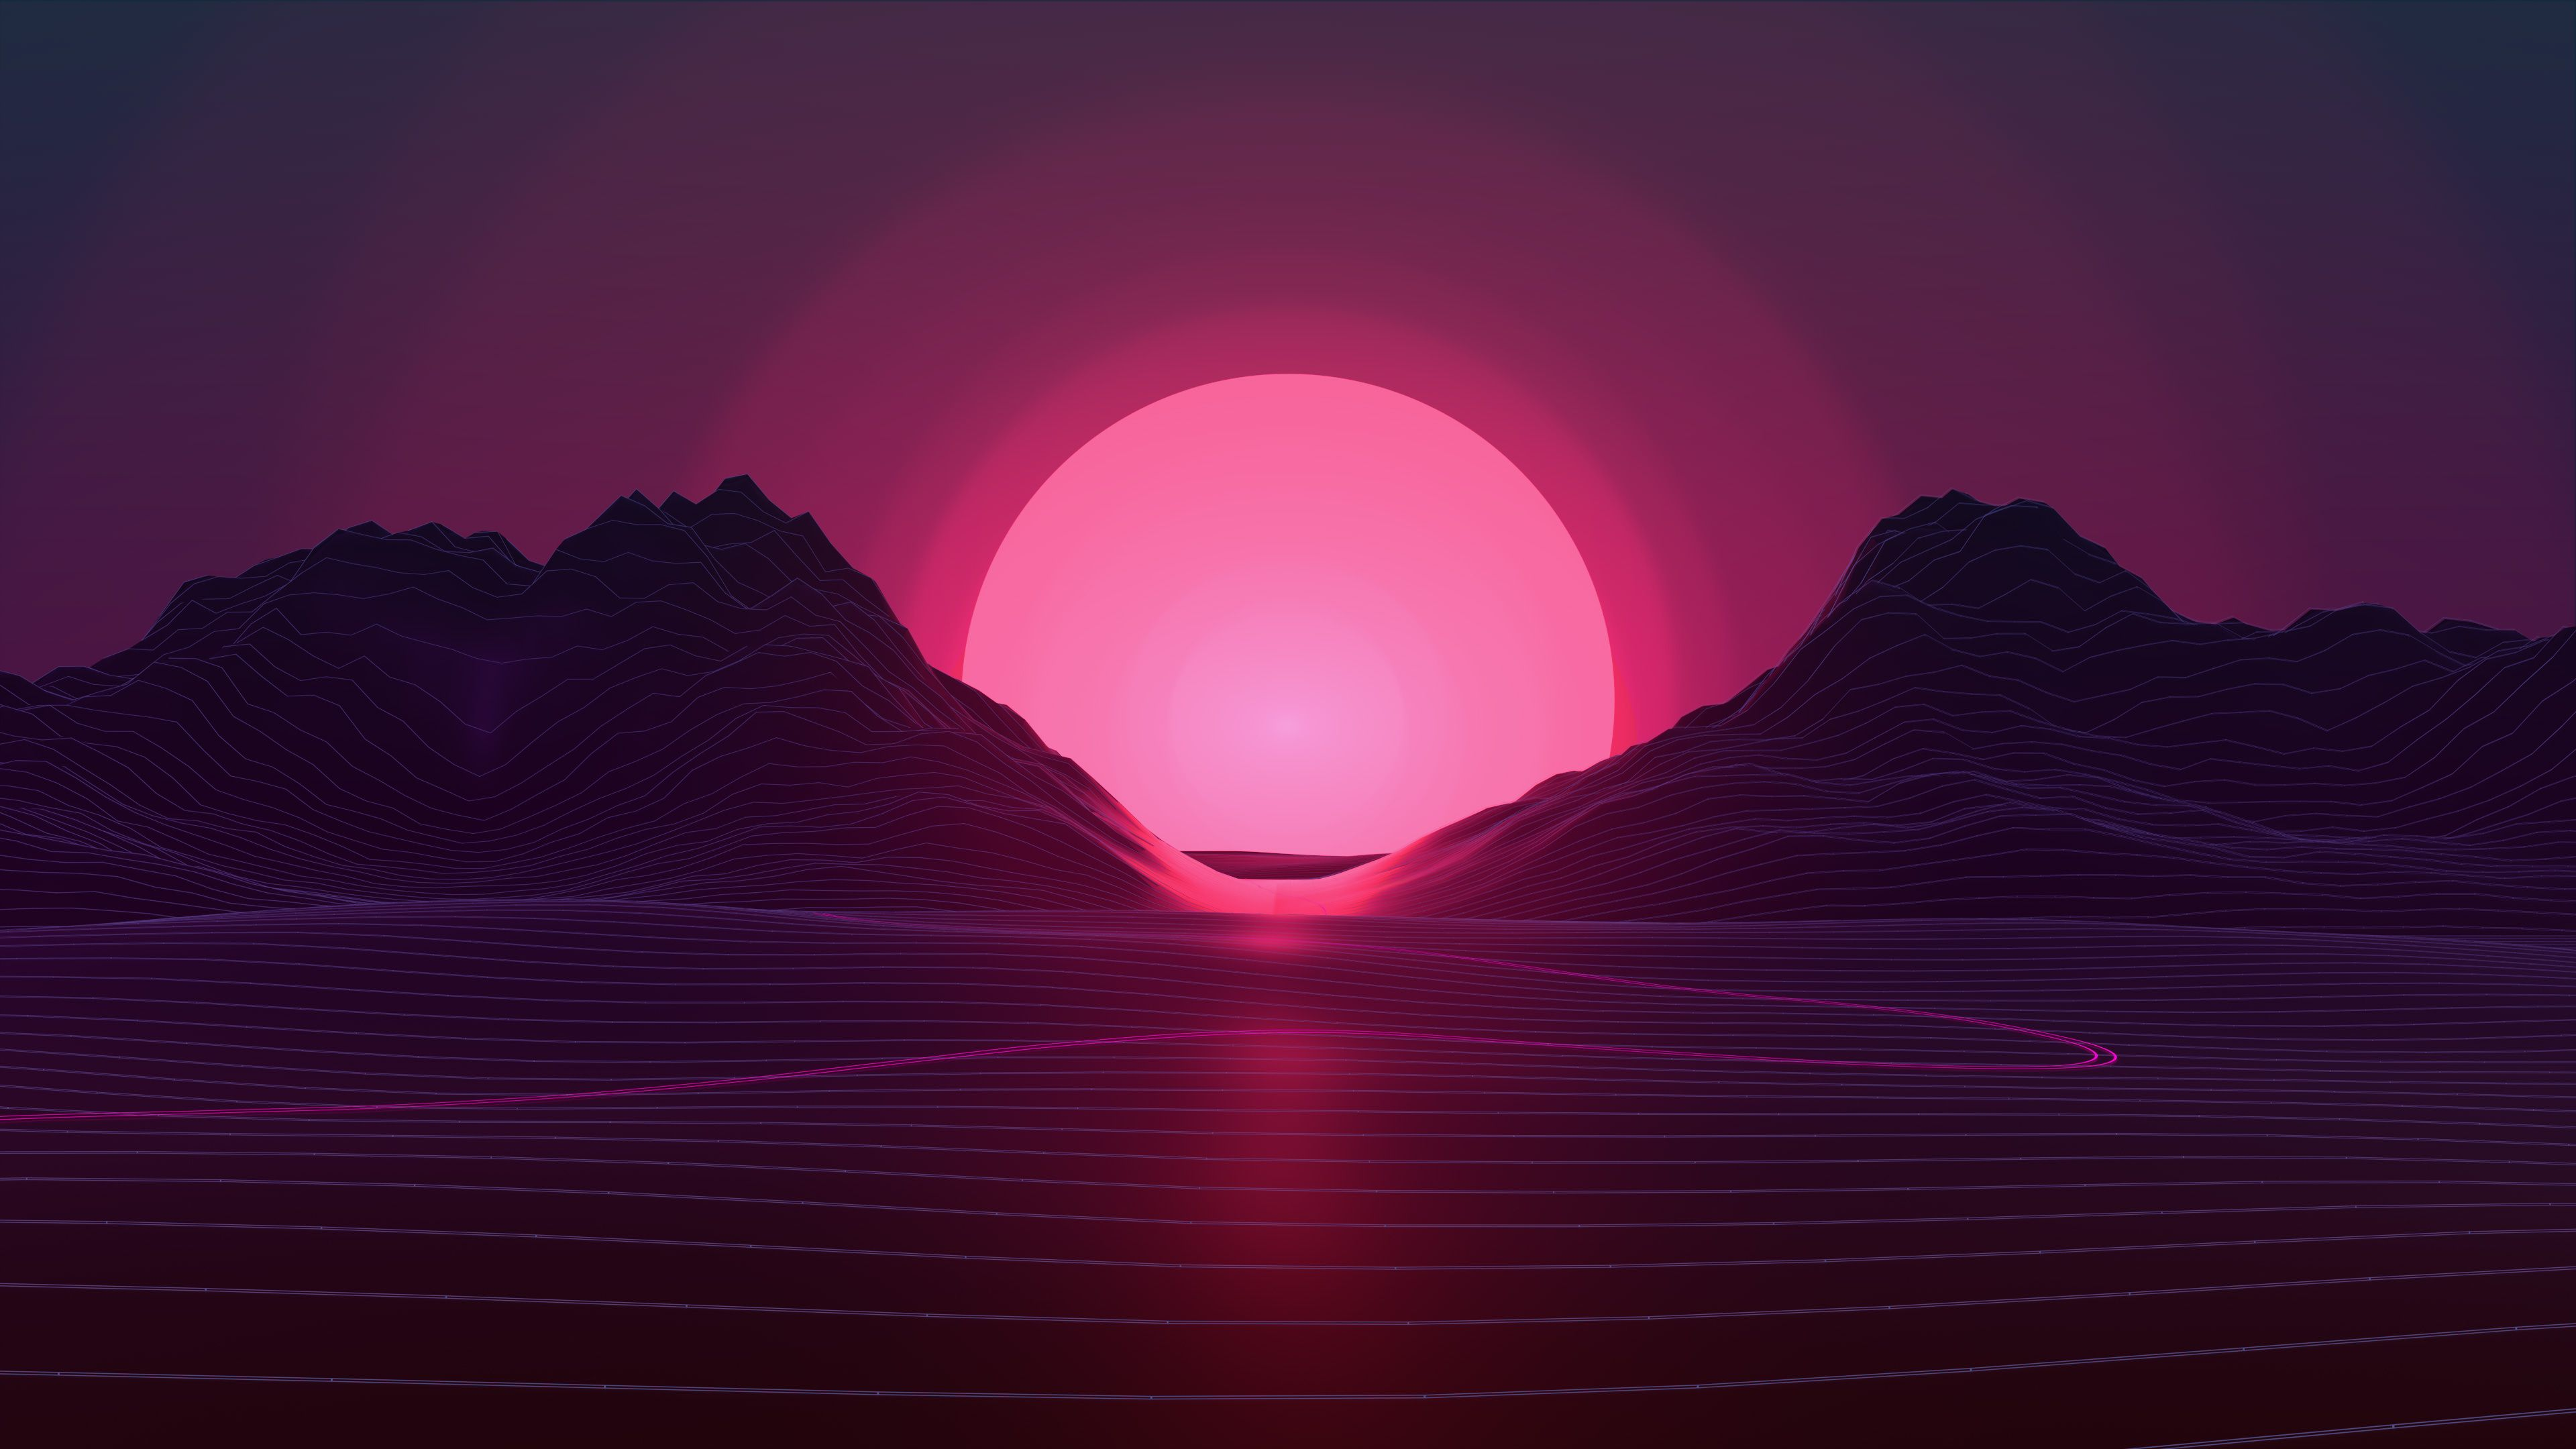 Vaporwave Sunset 4k Vaporwave Wallpaper Sunset Wallpaper Neon Wallpaper